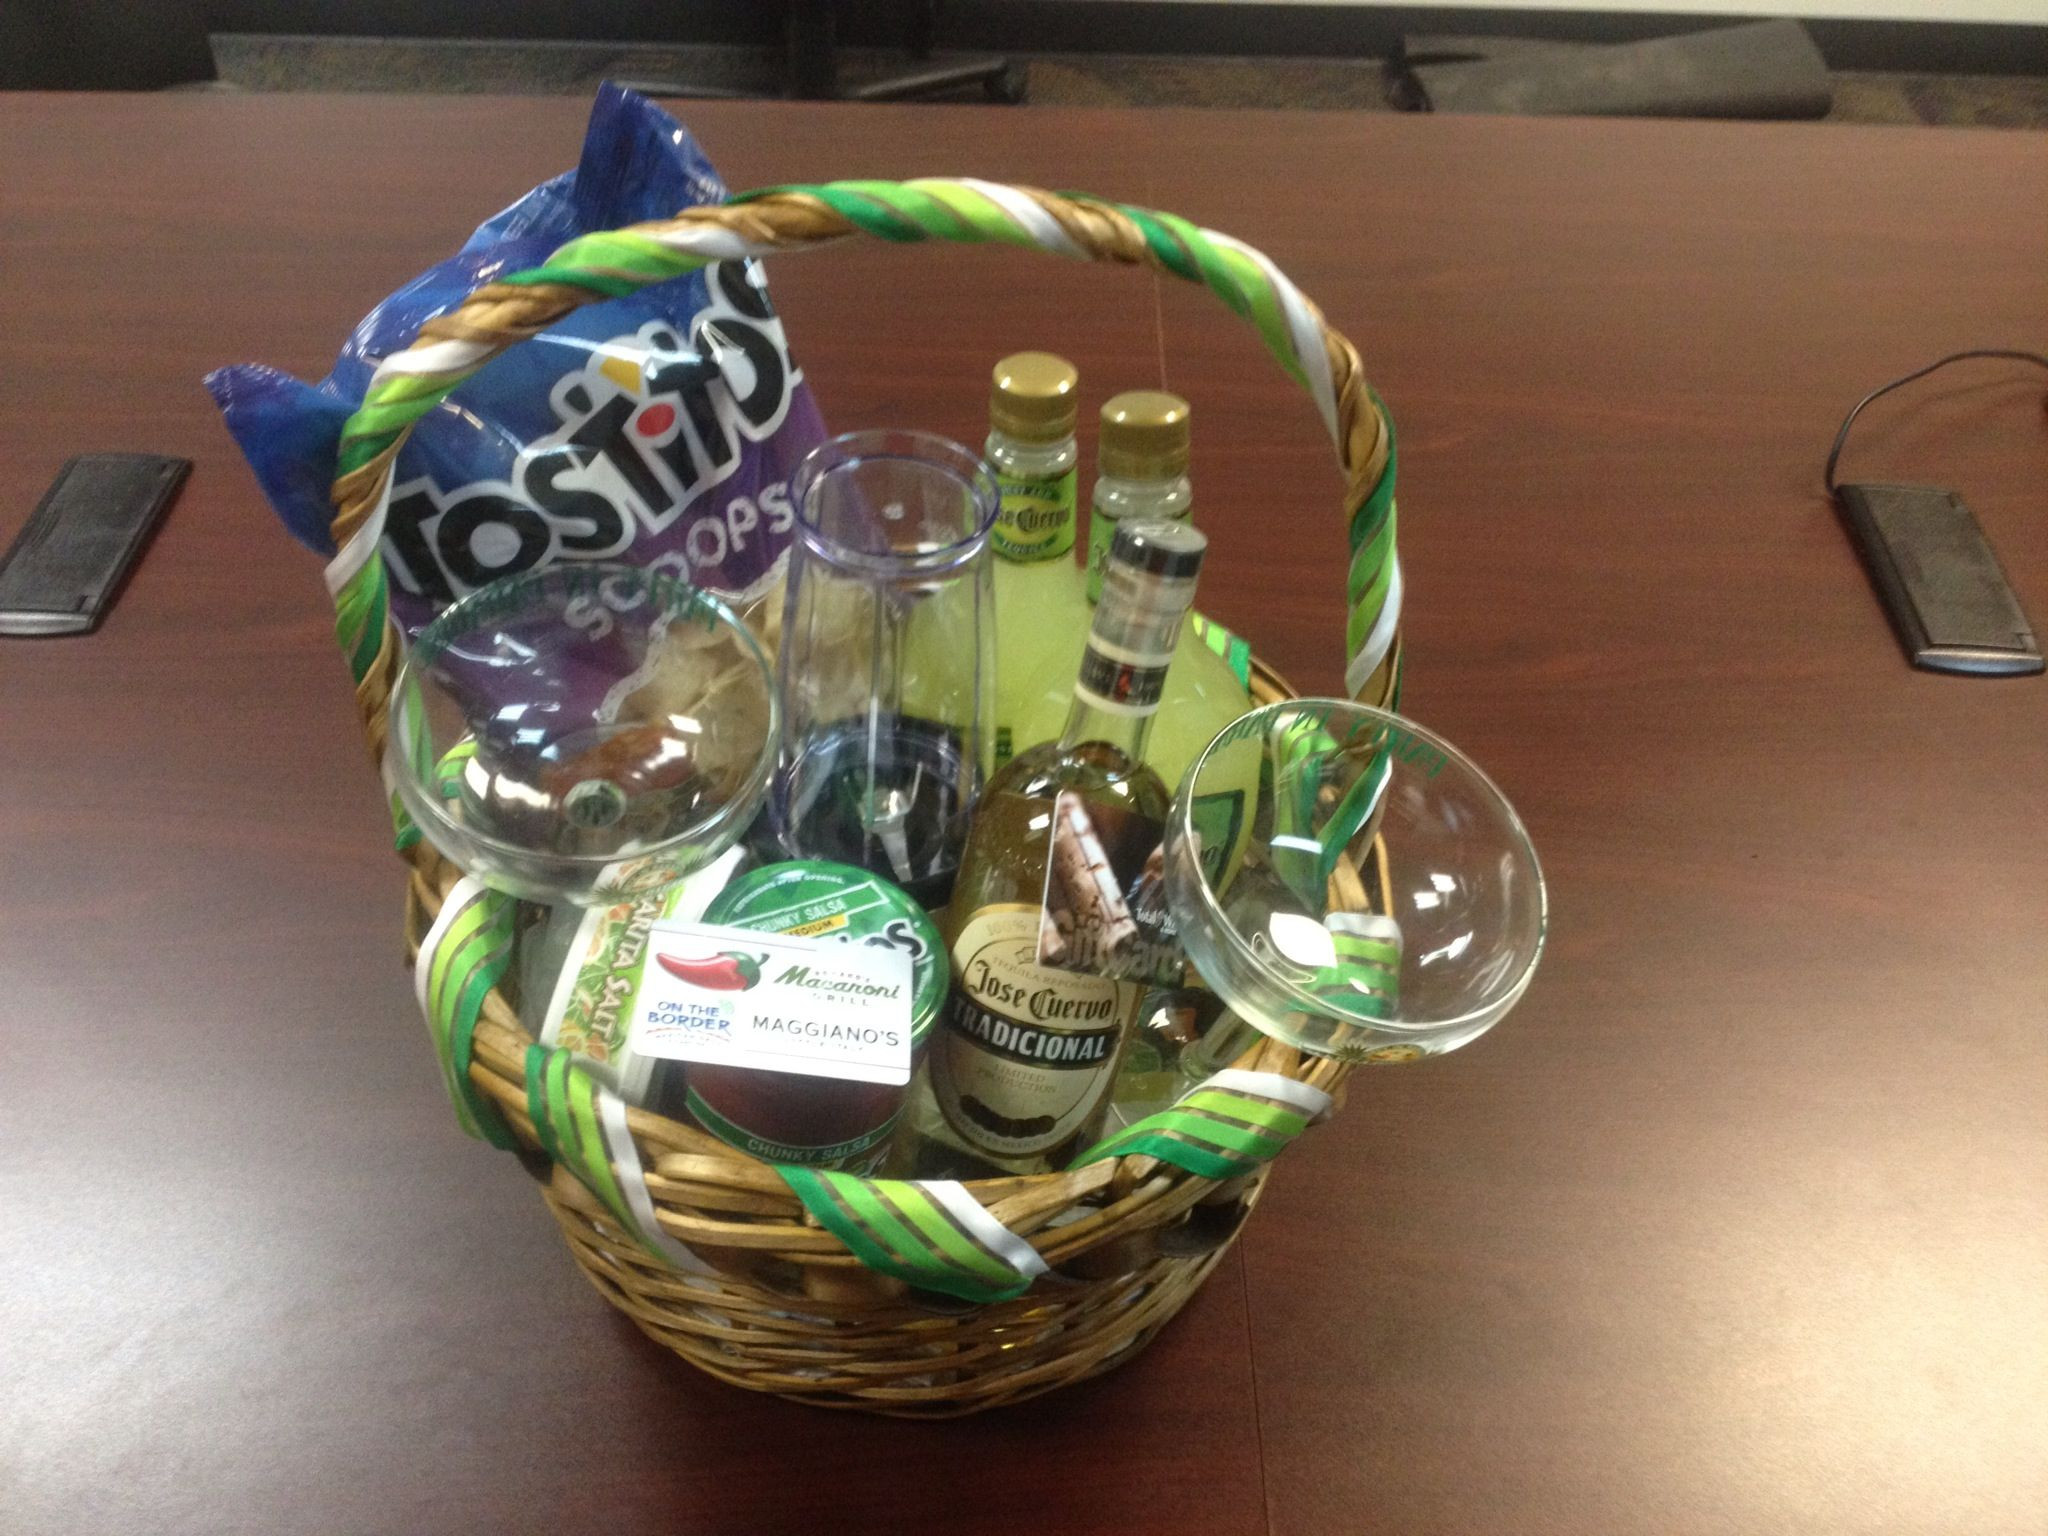 Best ideas about Tequila Gift Ideas . Save or Pin BASKET 7 Margarita Basket 750 ml Bottle Jose Cuervo Now.